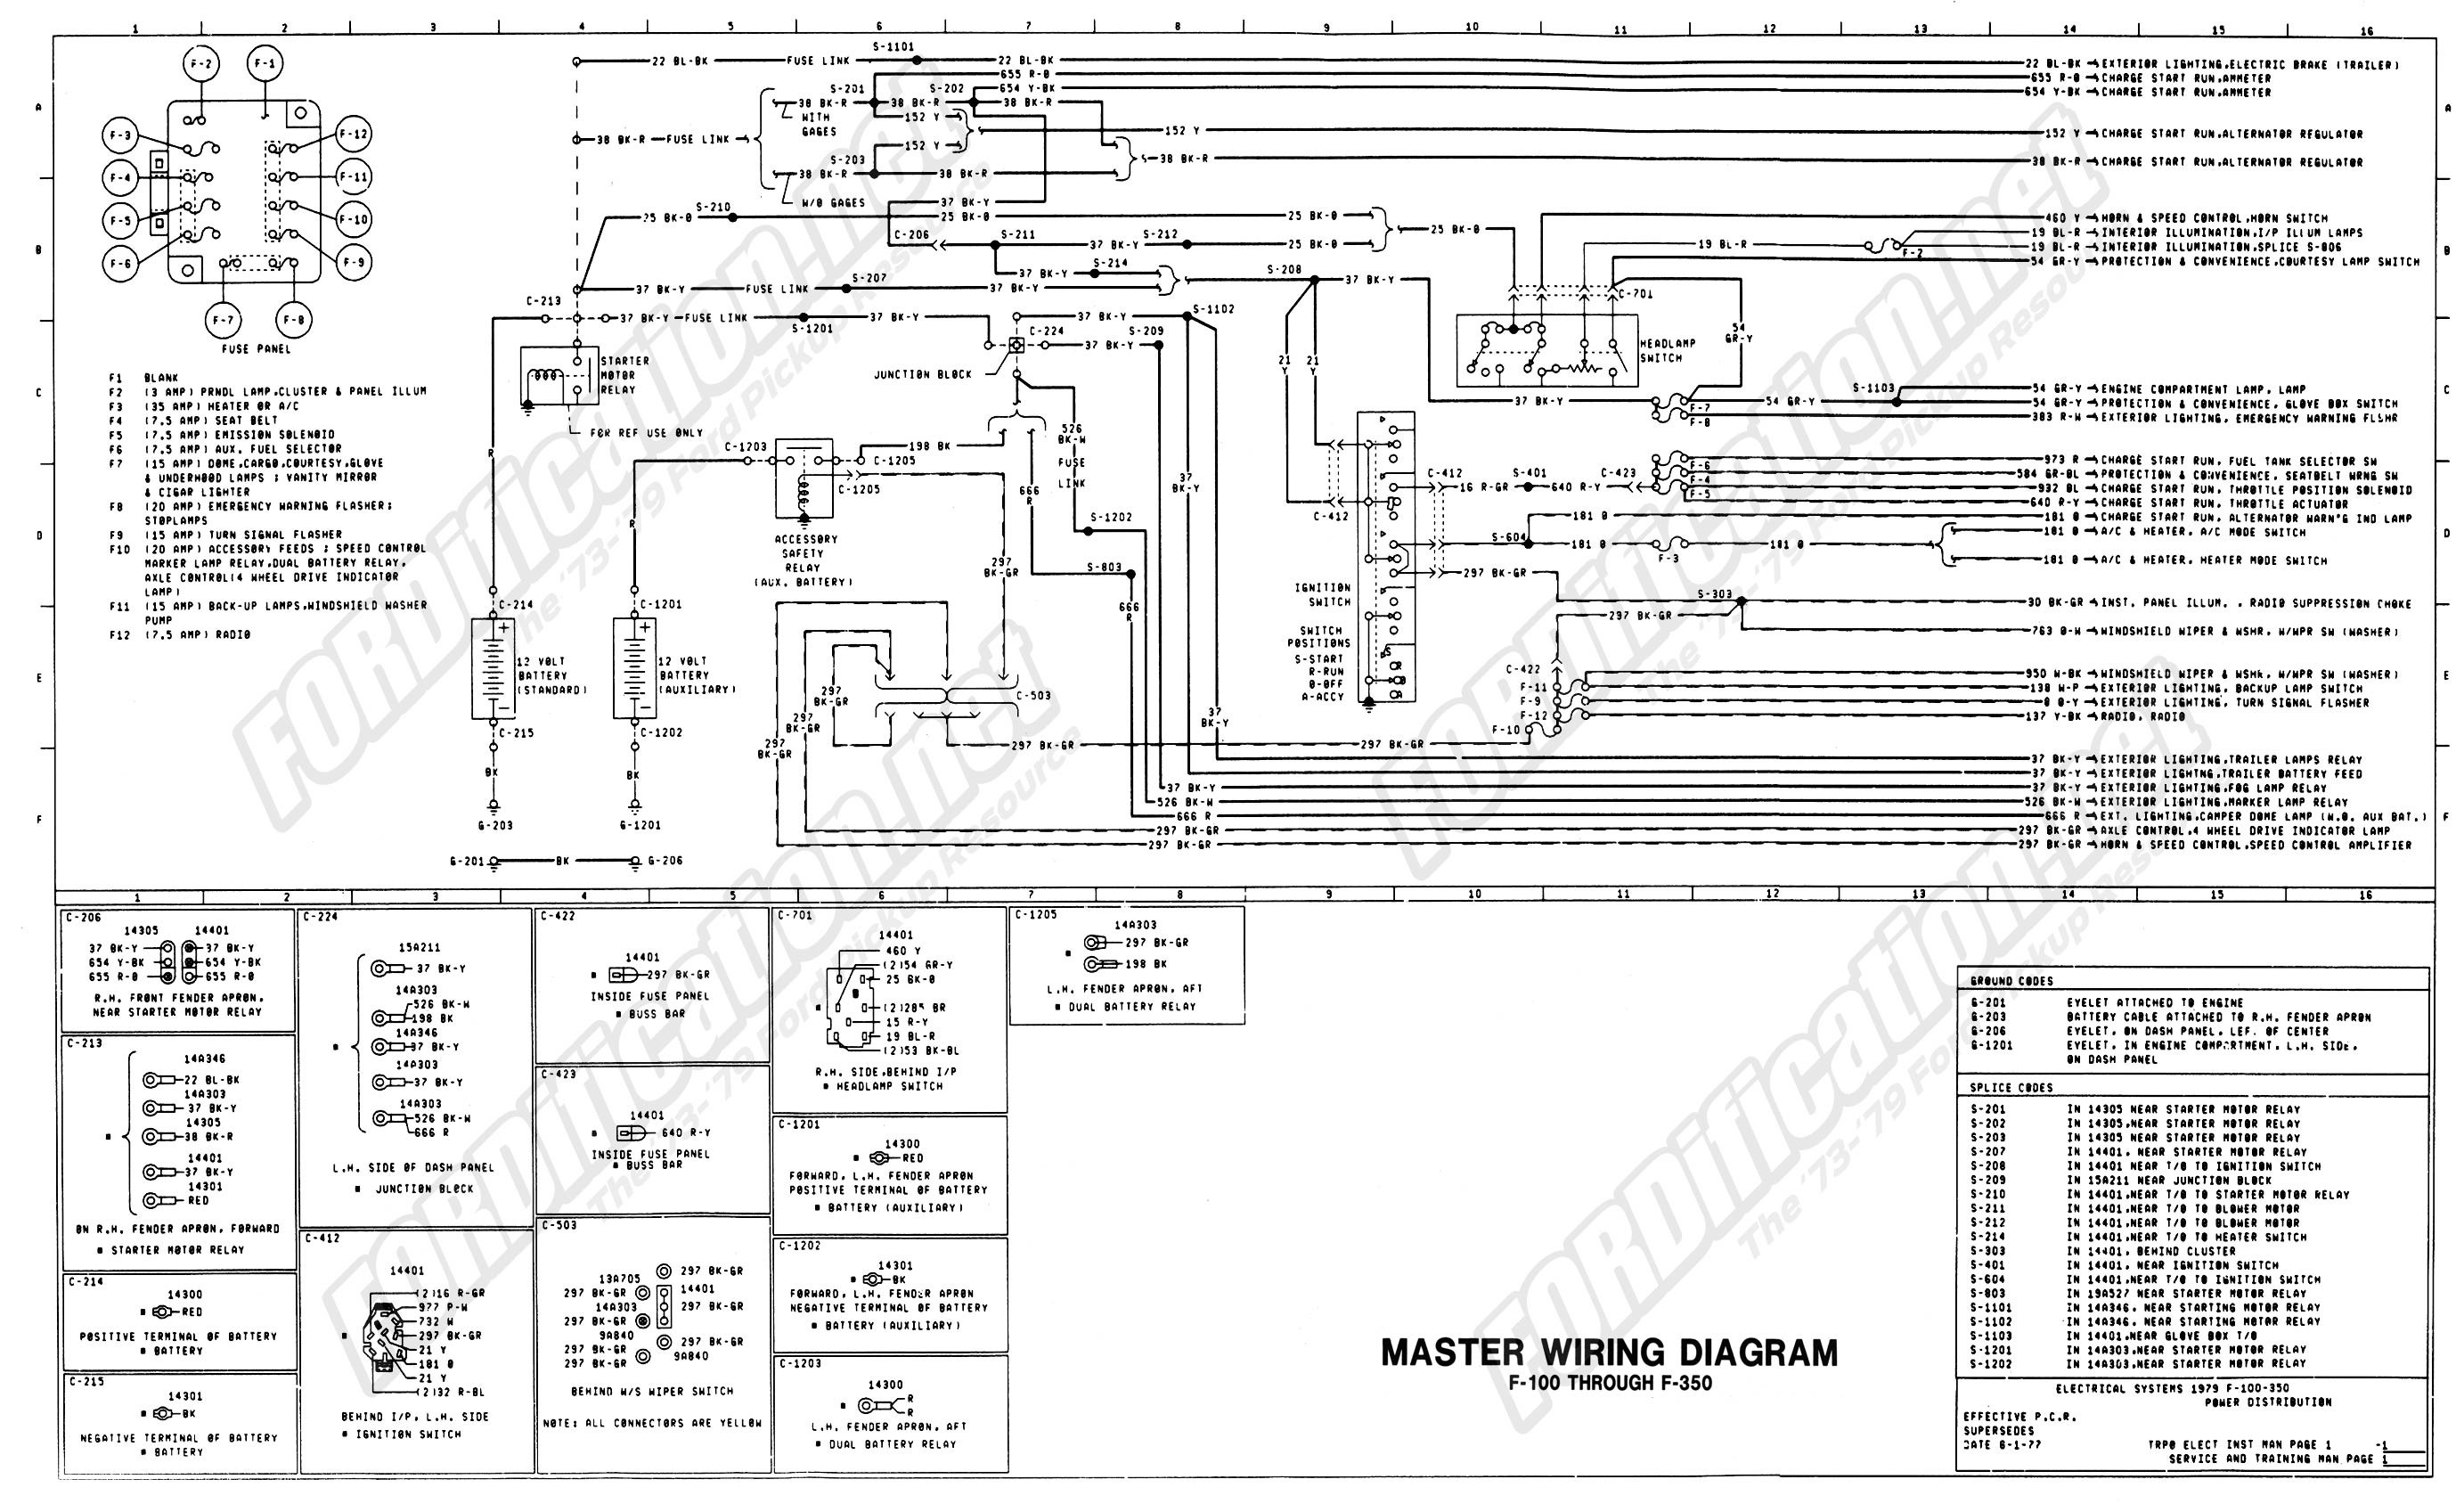 1990 Chevrolet Suburban Blower Motor Wiring Diagram Worksheet And Radio 2000 Chevy Silverado Brake Light Switch Rh Detoxicrecenze Com Relay 1999